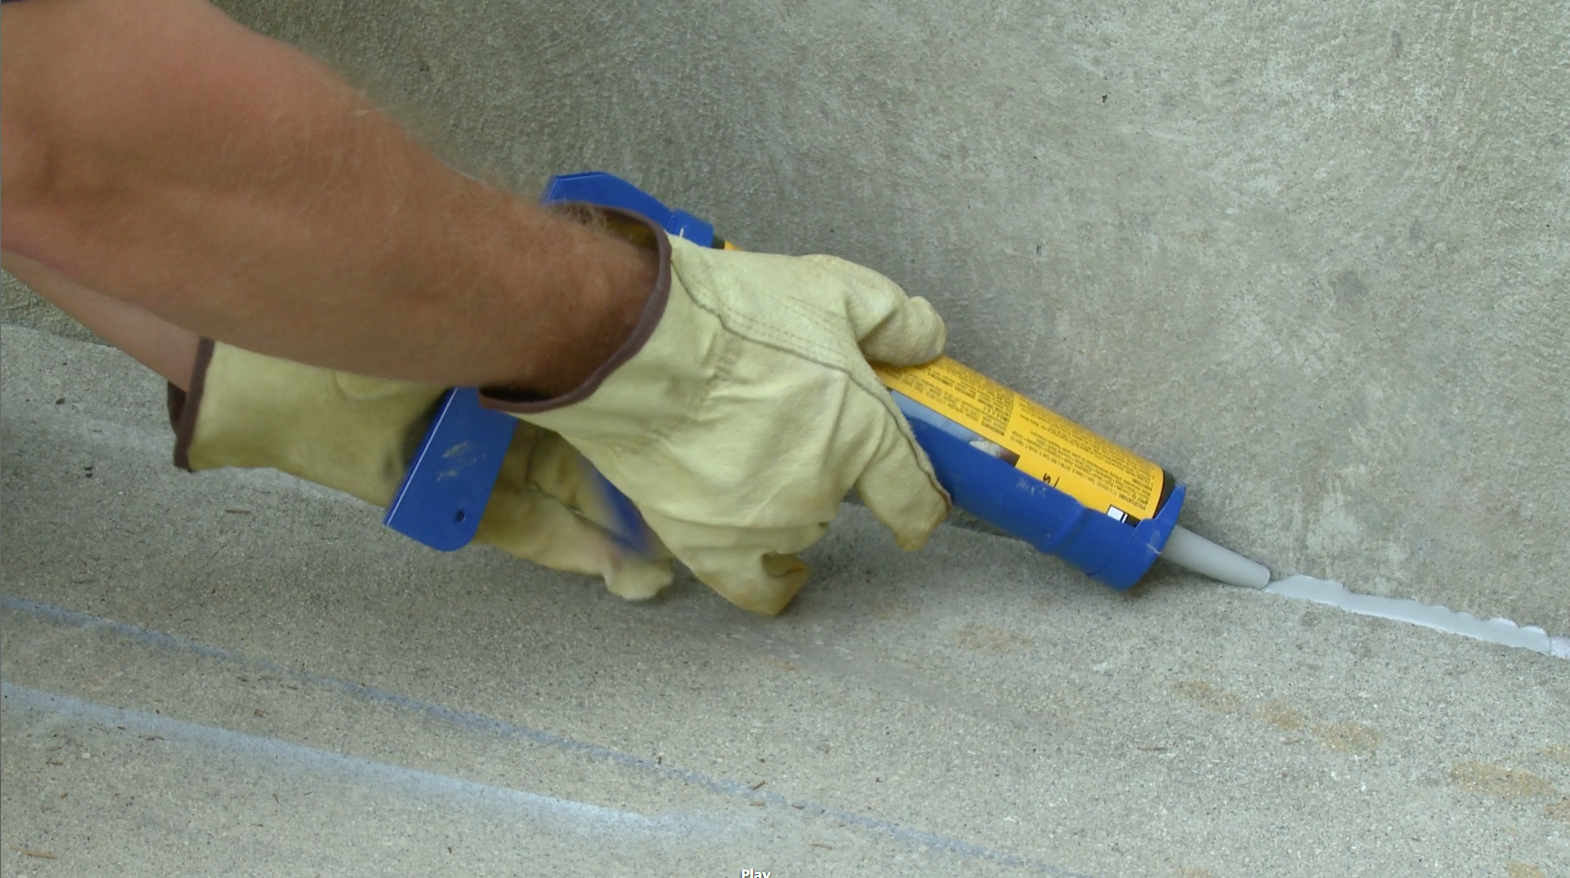 Great Caulking Tips Tricks Concrete Diy Diy Home Repair Diy Home Improvement